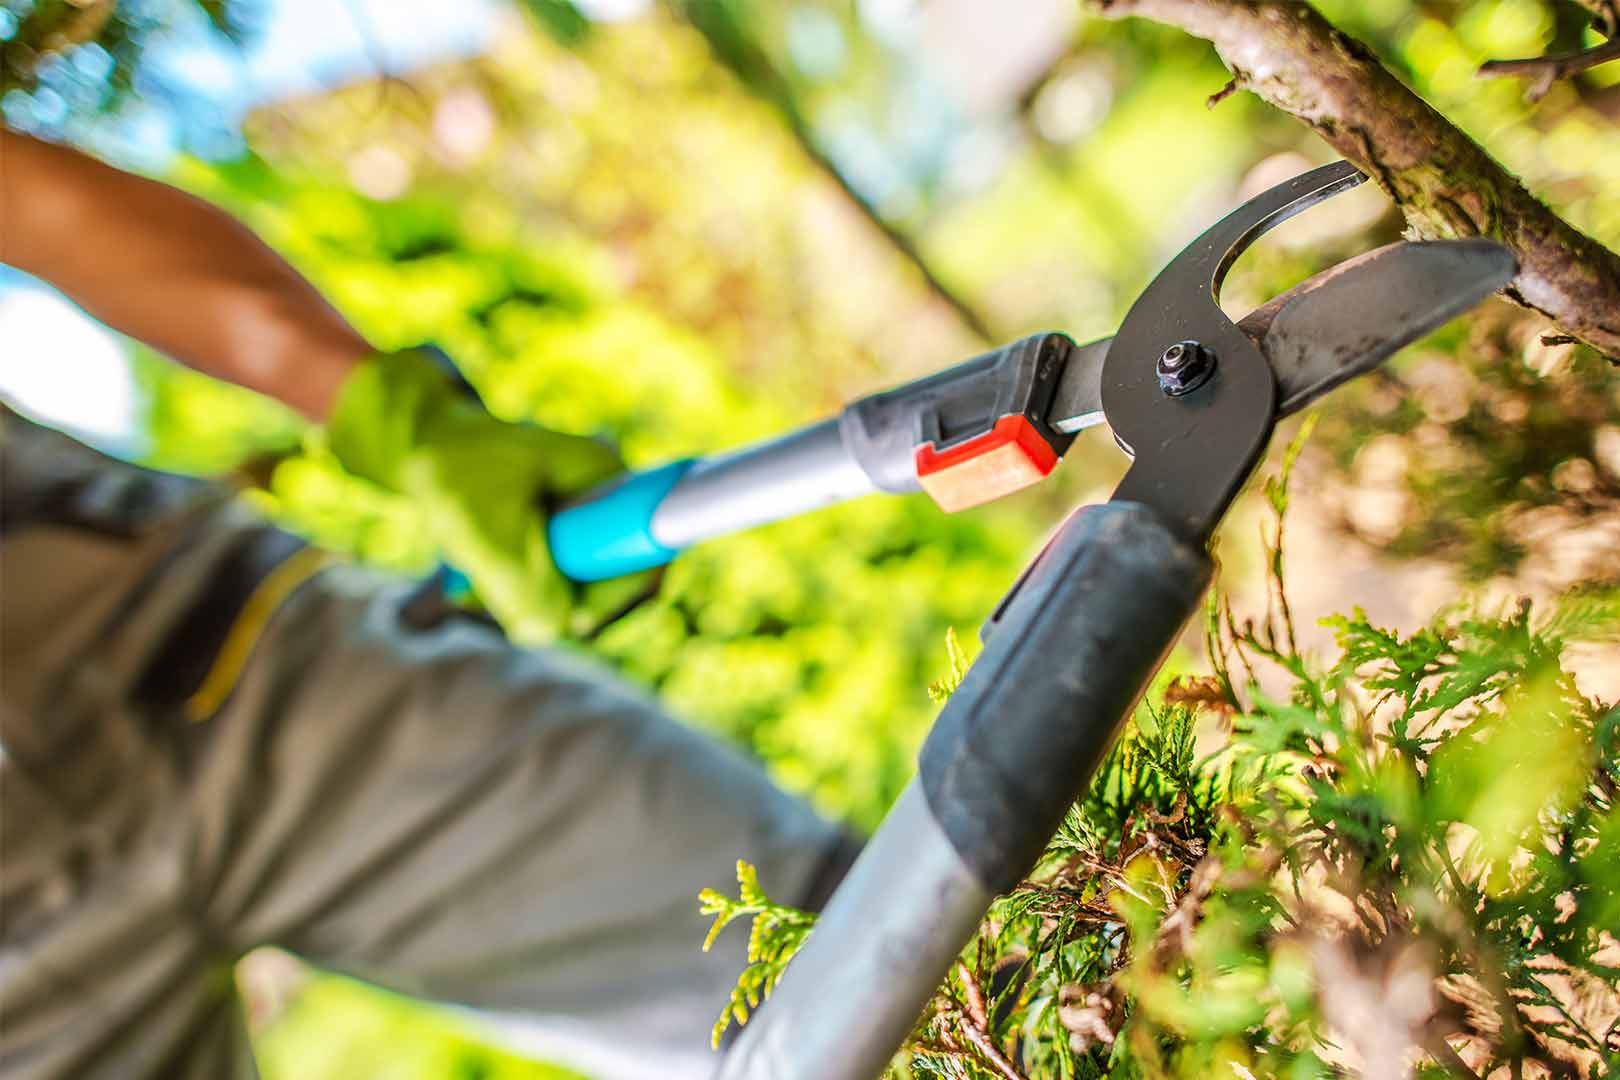 Tree Pruning companies-Palm Beach County Tree Trimming and Tree Removal Services-We Offer Tree Trimming Services, Tree Removal, Tree Pruning, Tree Cutting, Residential and Commercial Tree Trimming Services, Storm Damage, Emergency Tree Removal, Land Clearing, Tree Companies, Tree Care Service, Stump Grinding, and we're the Best Tree Trimming Company Near You Guaranteed!